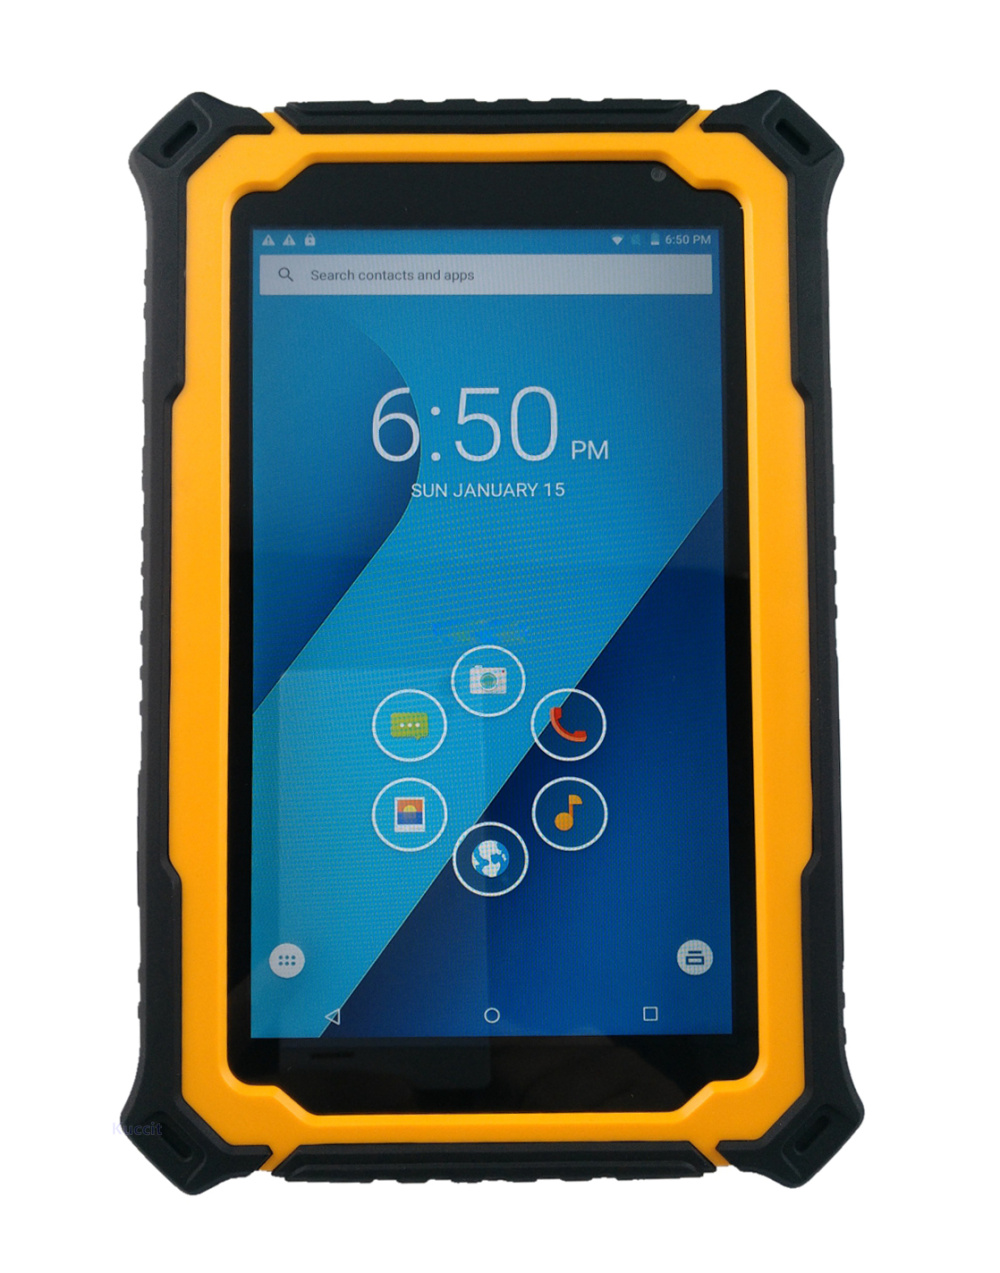 Original Kcosit T71V3 Rugged Tablet PC Mini IP67 Waterproof Phone Android 5 1 Outdoor Computer 3GB